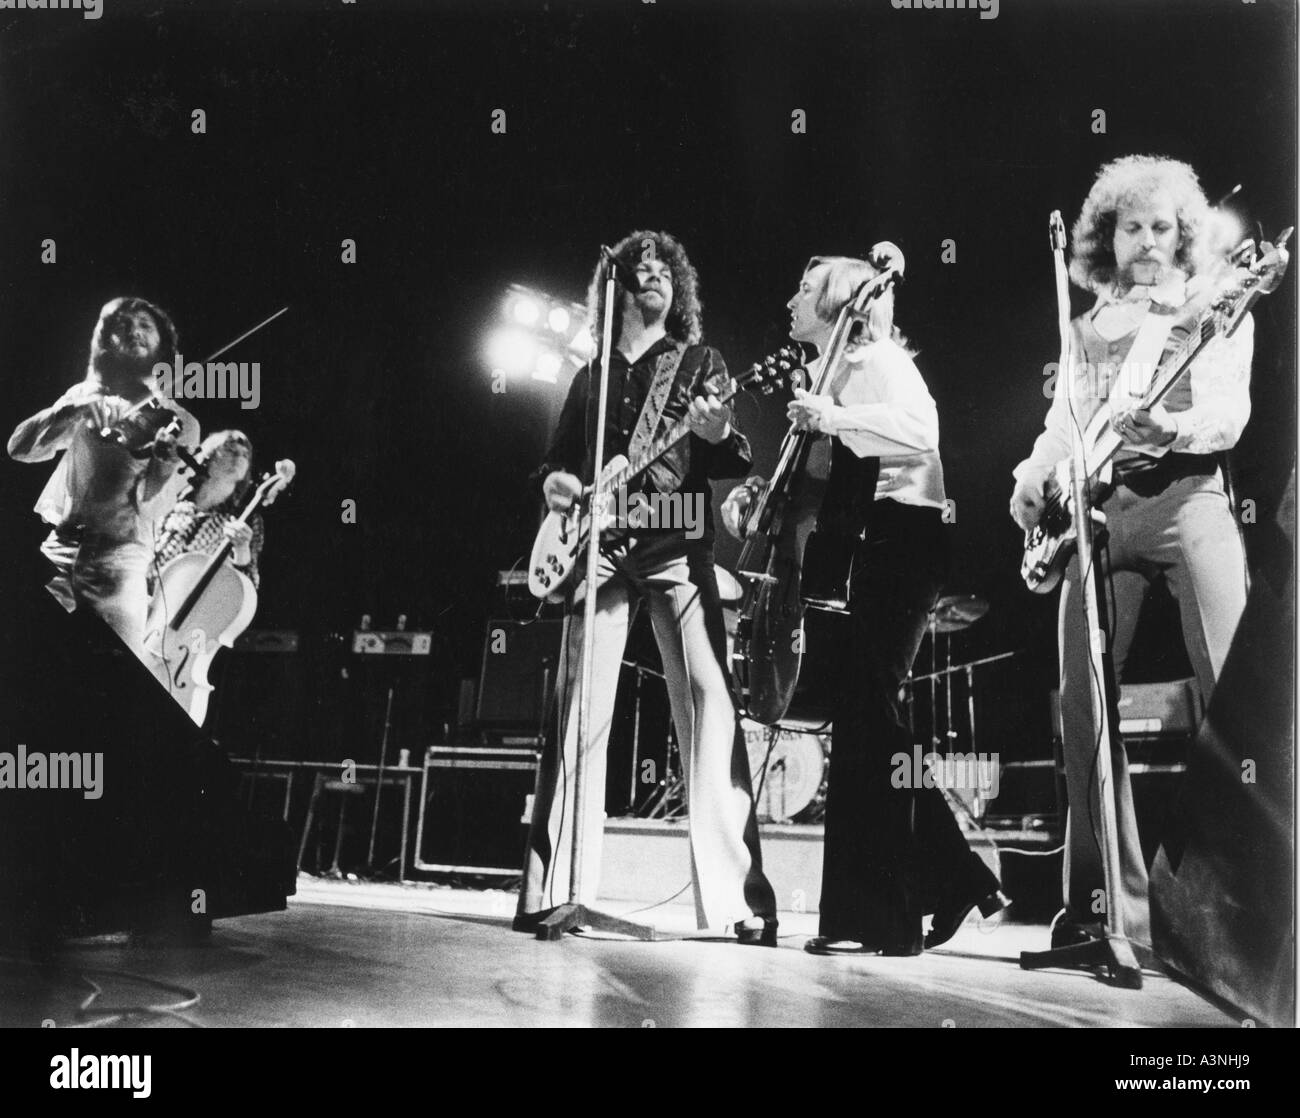 electric light orchestra uk group about 1973 stock photo 6187496